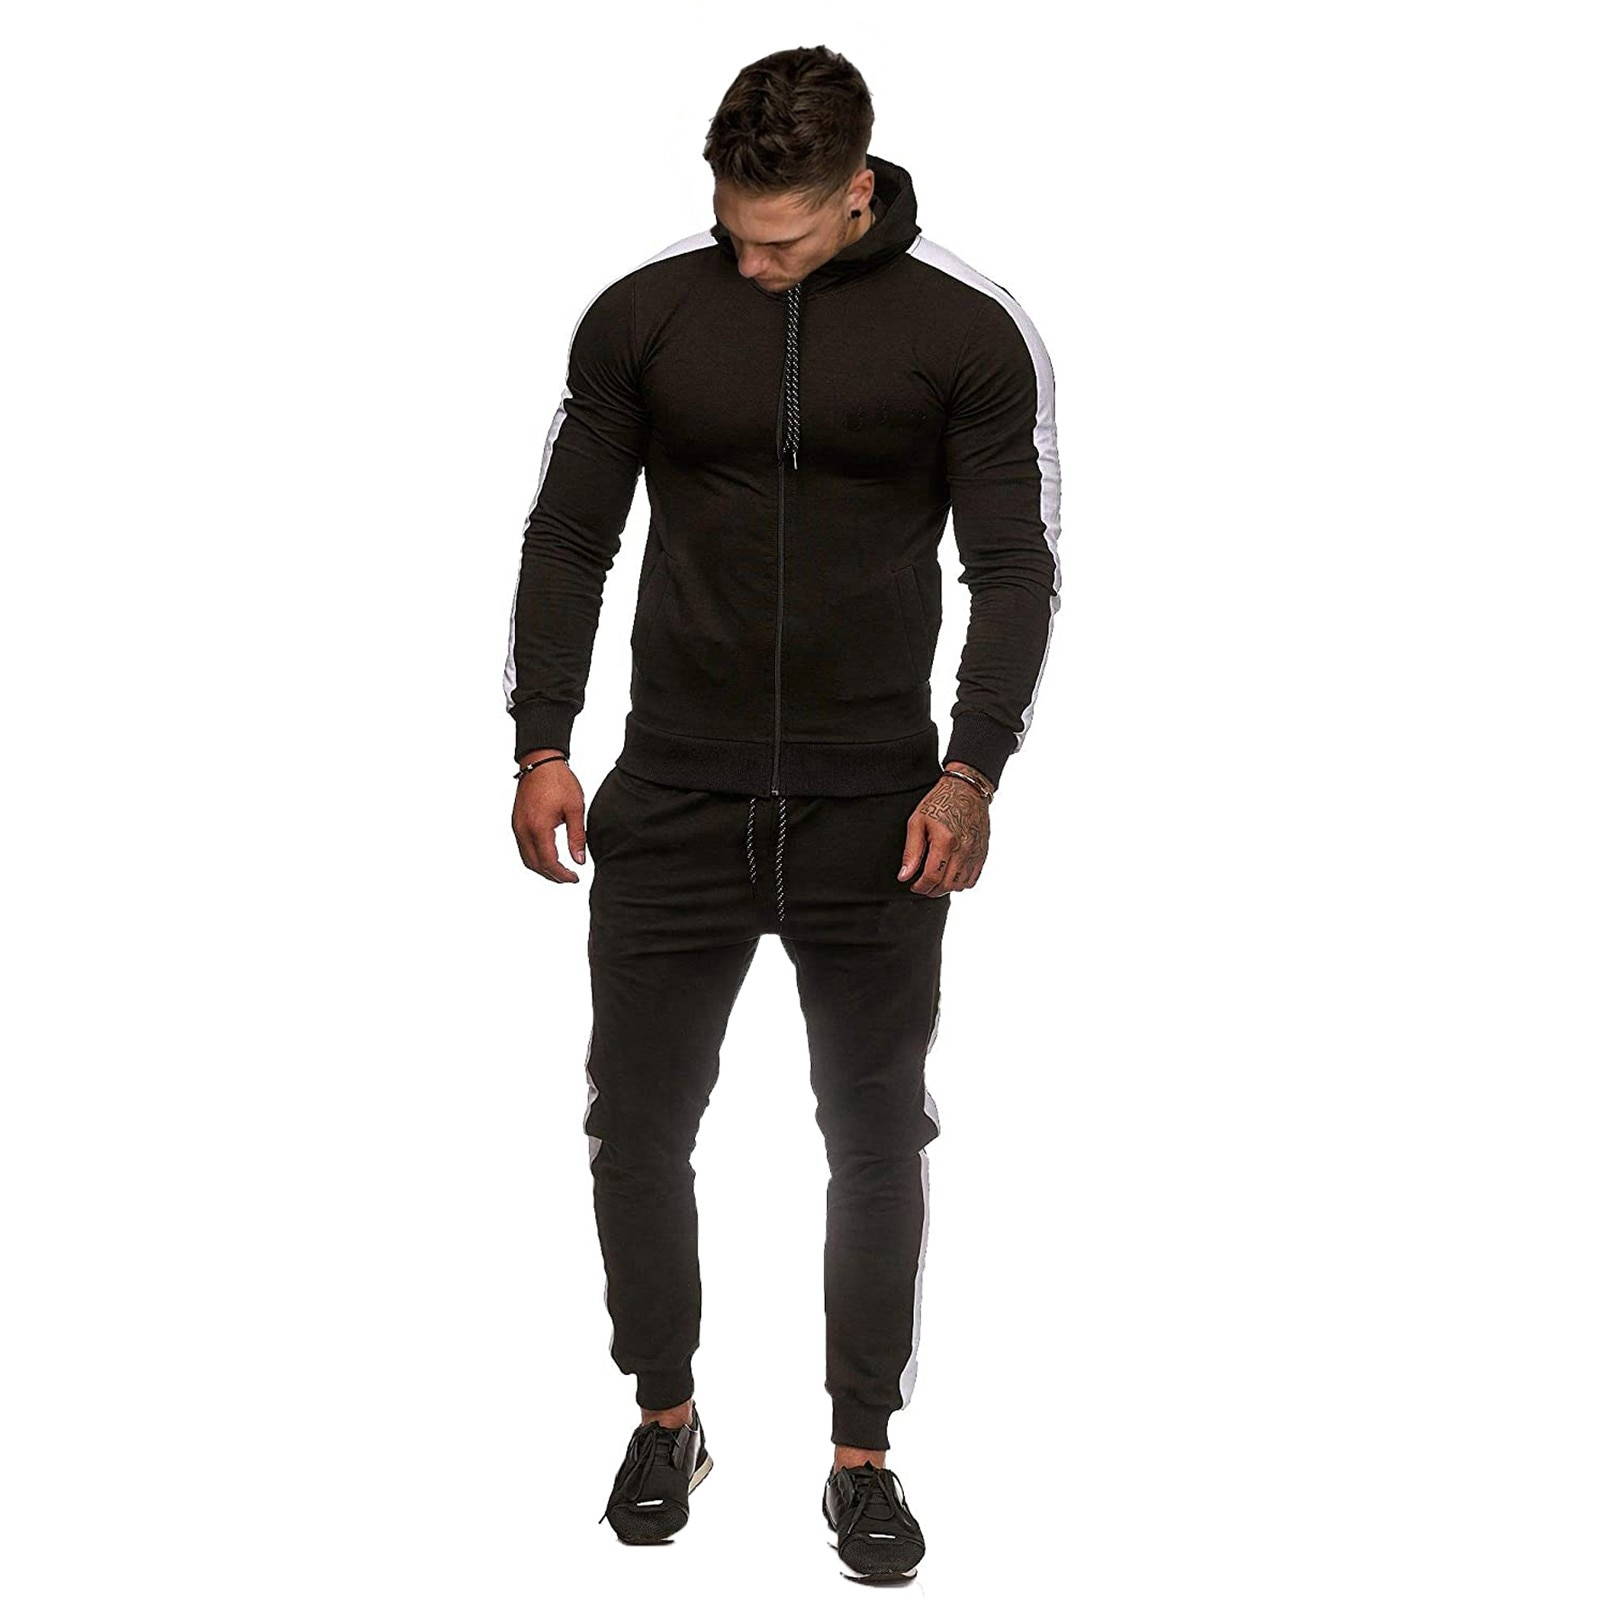 Mens Autumn Male pullover Splicing Zipper Print Sweatshirt Top Pants Trousers Sets Sport Suit Tracksuit Спортивный Костюм